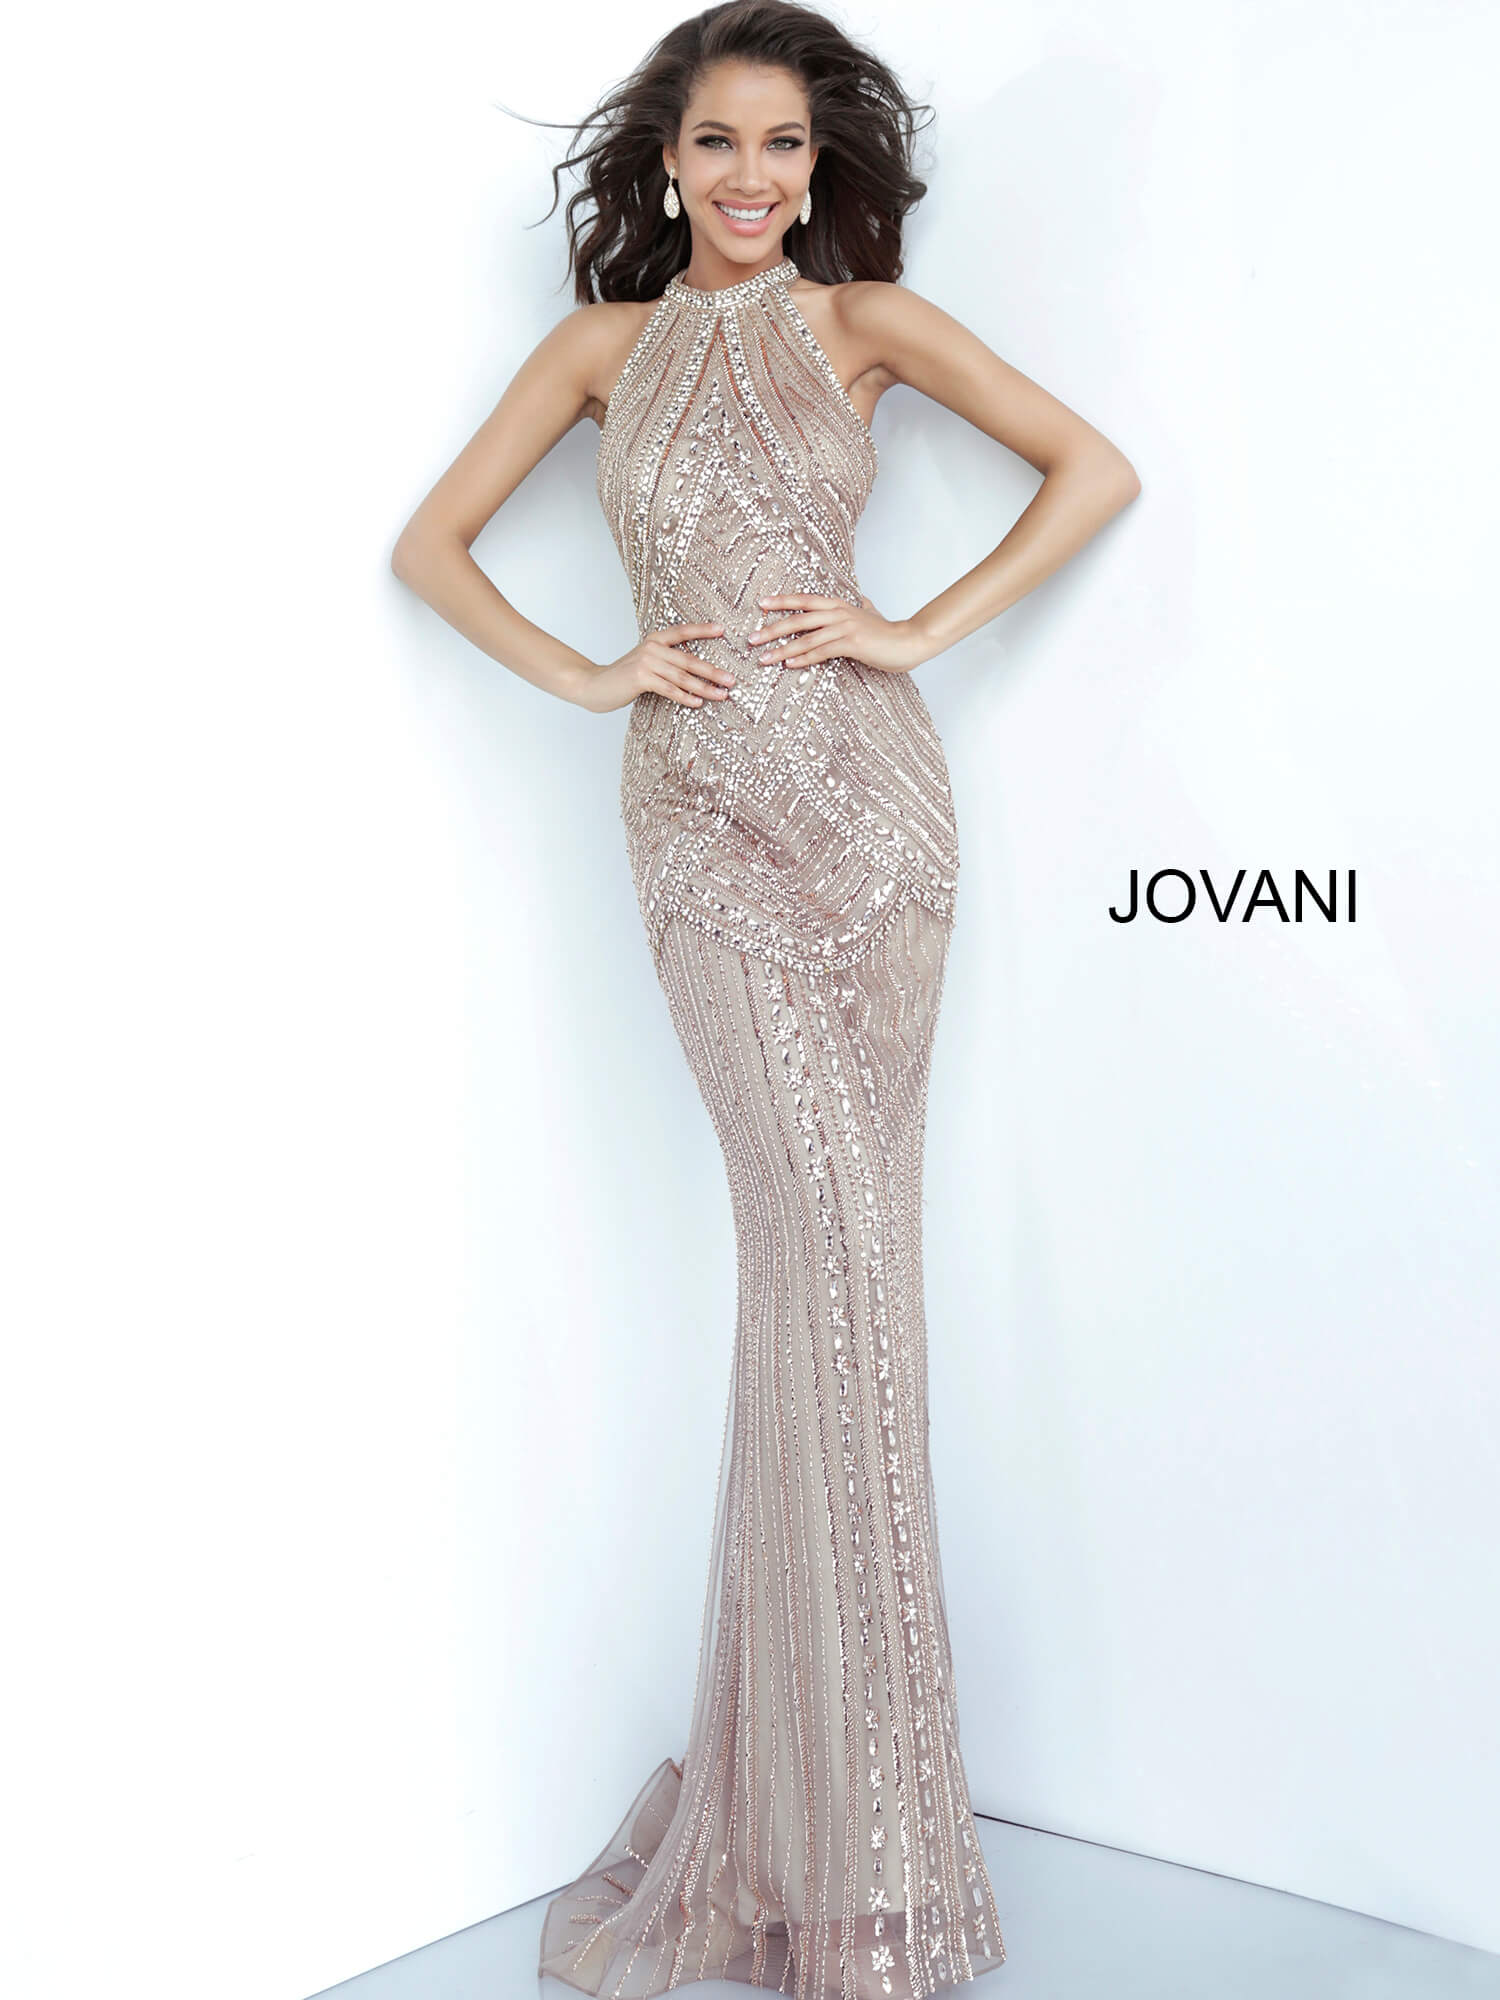 Jovani 2554 Champagne High Neck Beaded Evening Dress